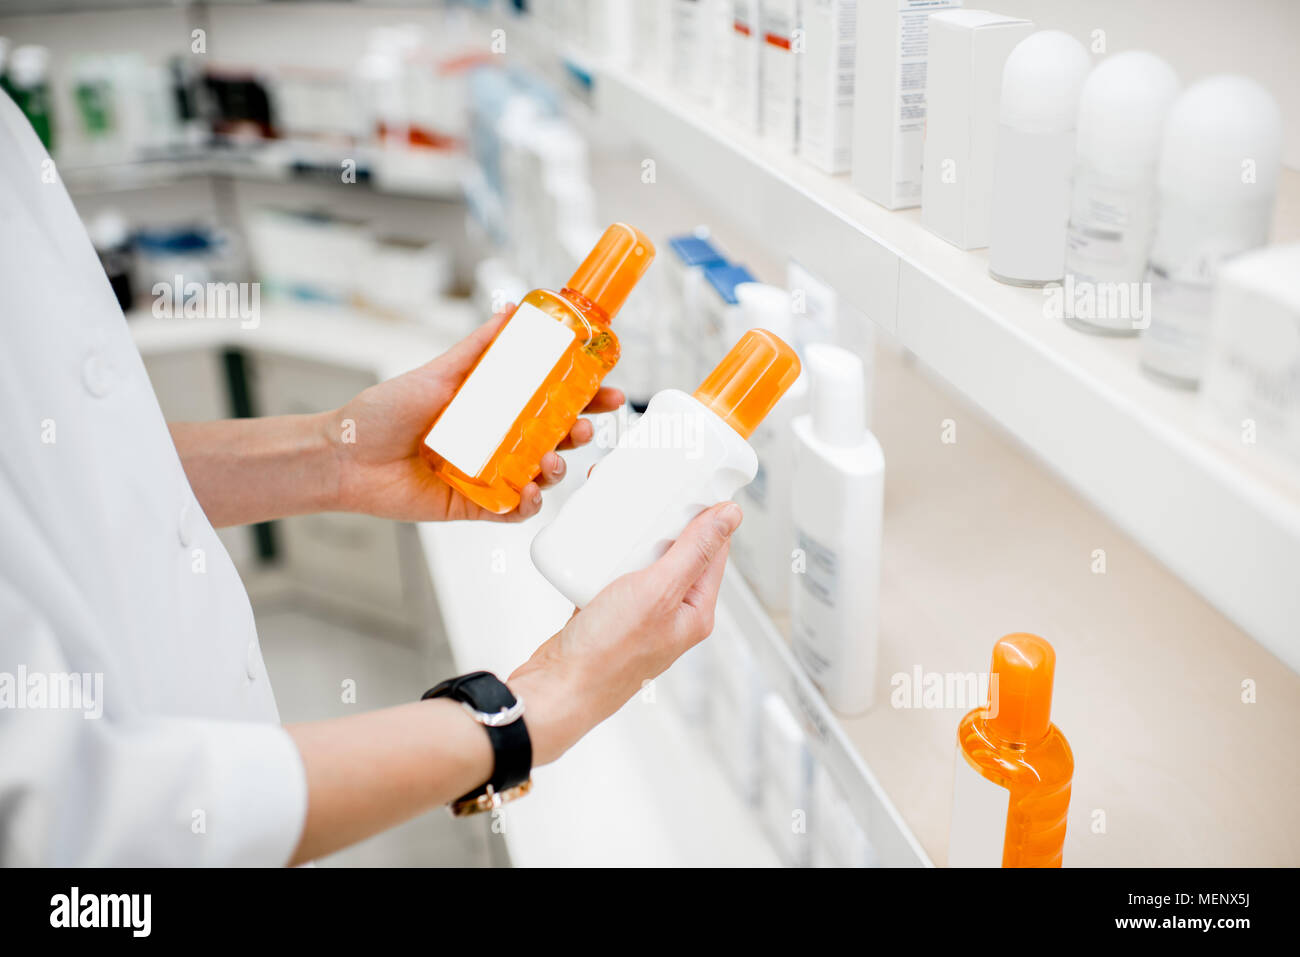 Taking sunscreen lotion at the pharmacy - Stock Image